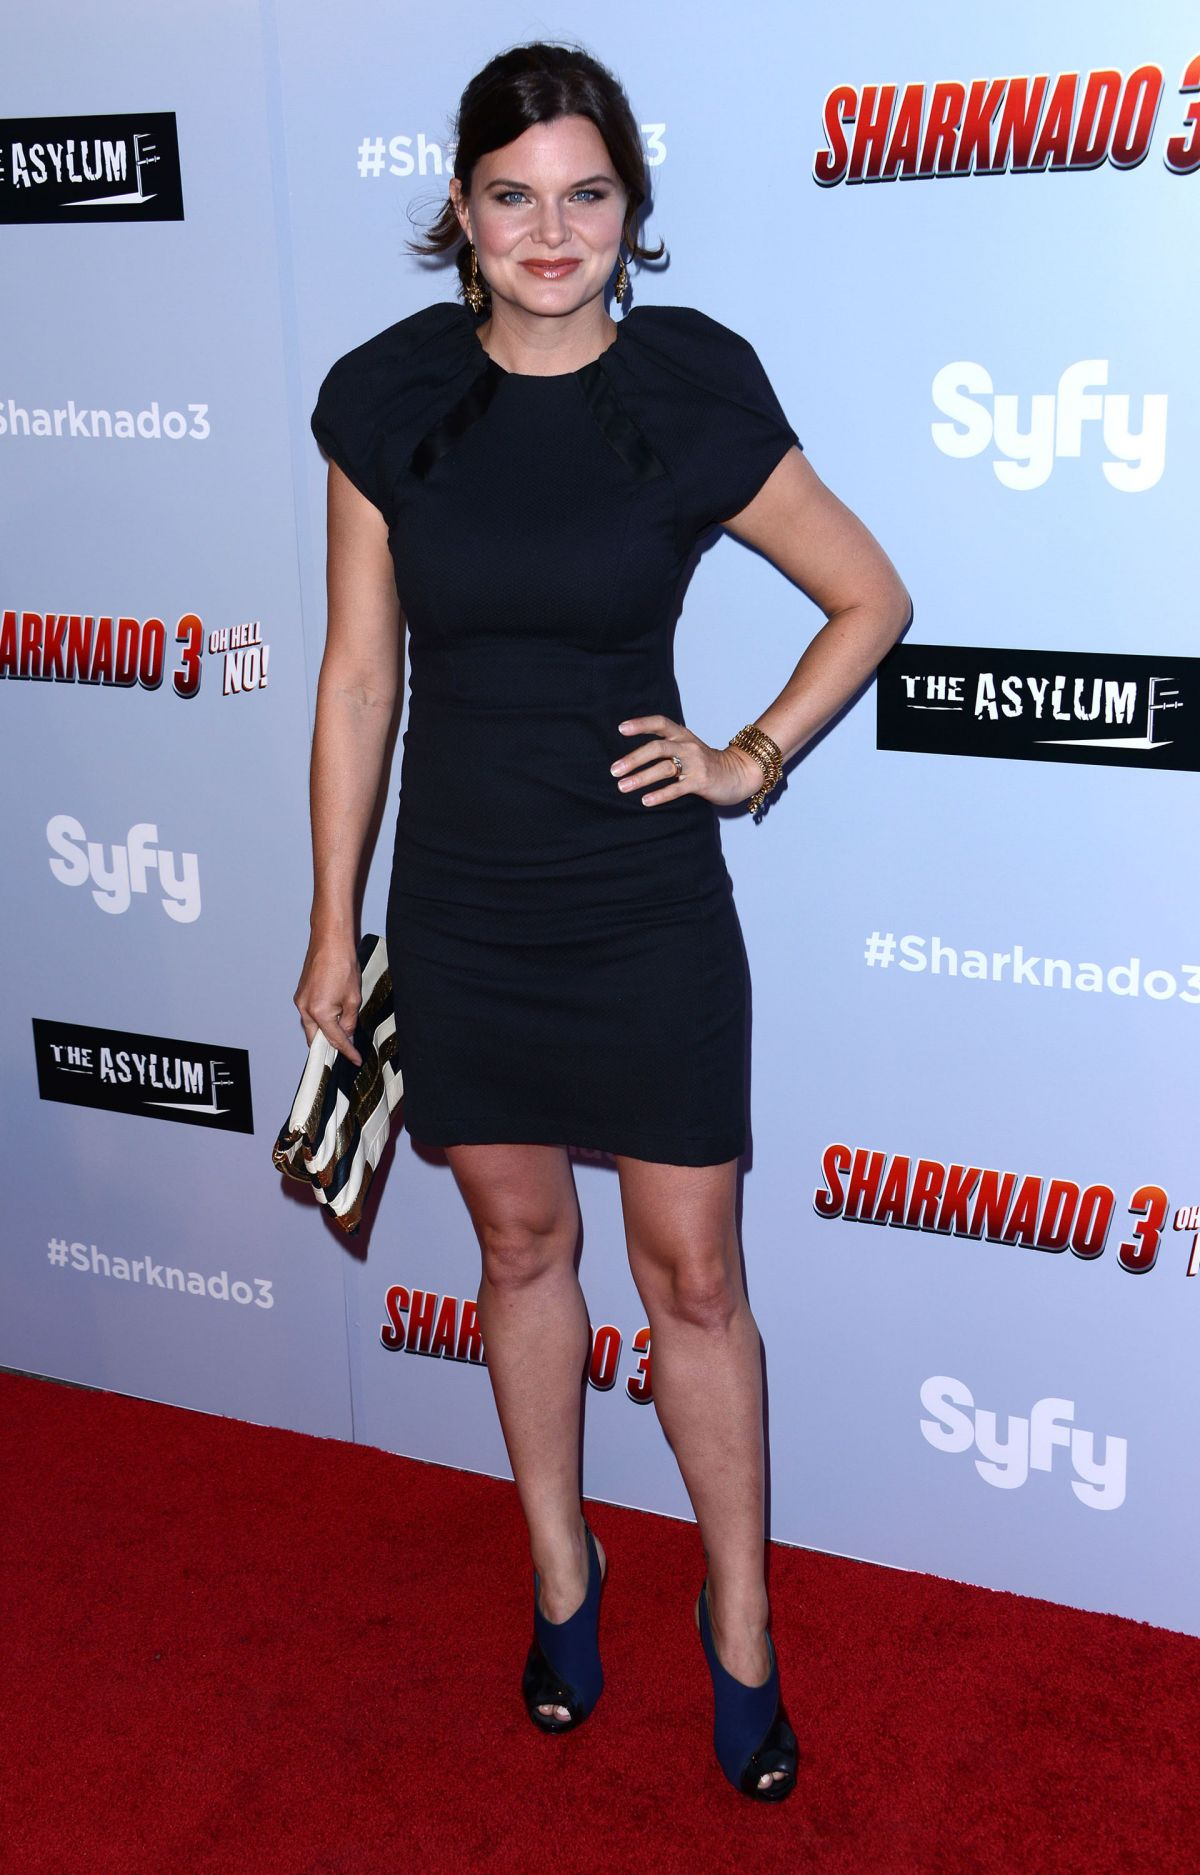 HEATHER TOM at Sharkando 3: Oh Hell No! Premiere in Los Angeles